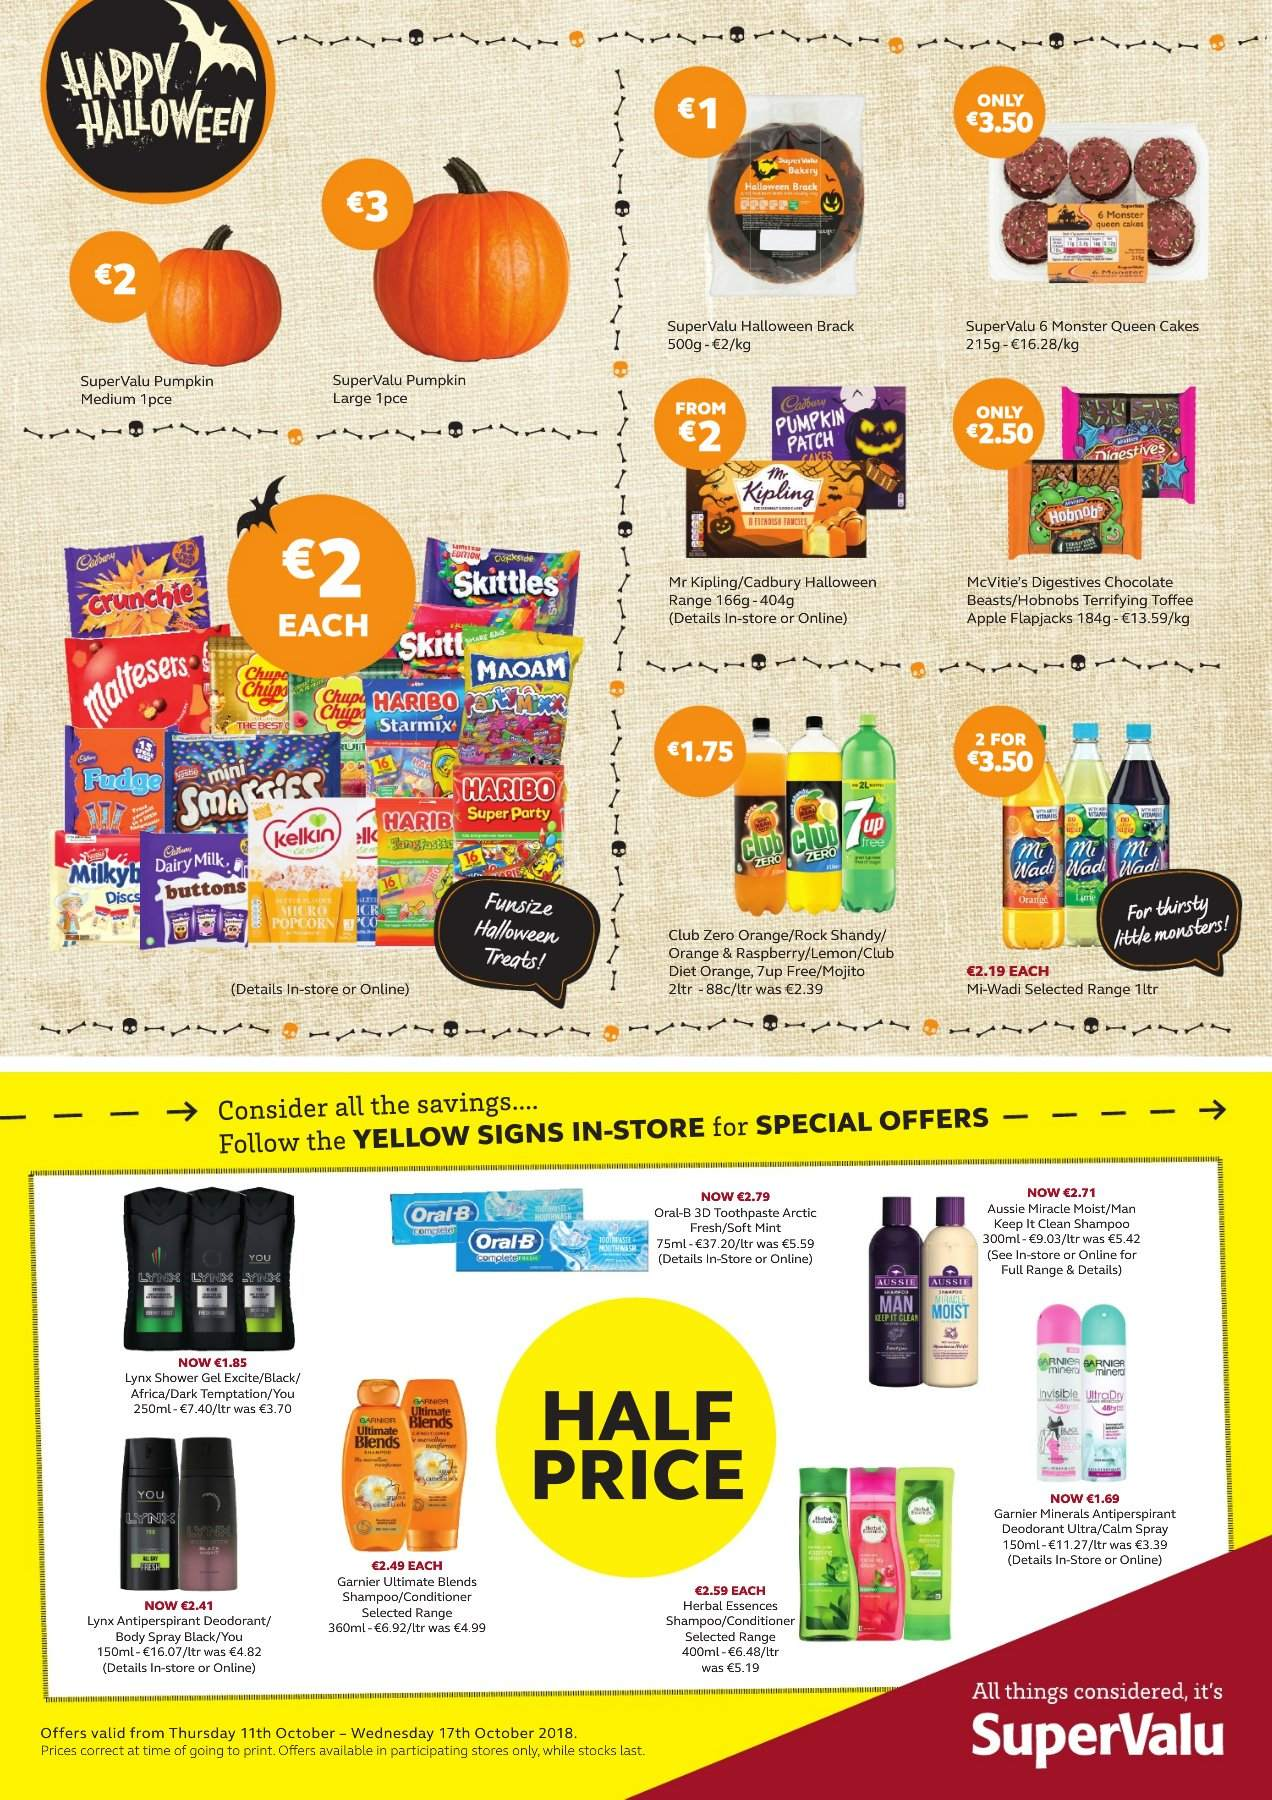 SuperValu offer  - 11.10.2018 - 17.10.2018 - Sales products - cake, pumpkin, chocolate, Haribo, toffee, Cadbury, Dairy Milk, Skittles, Monster, 7UP, club diet, club zero, shampoo, shower gel, Oral-B, toothpaste, Garnier, Aussie, conditioner, body spray, anti-perspirant, deodorant. Page 2.